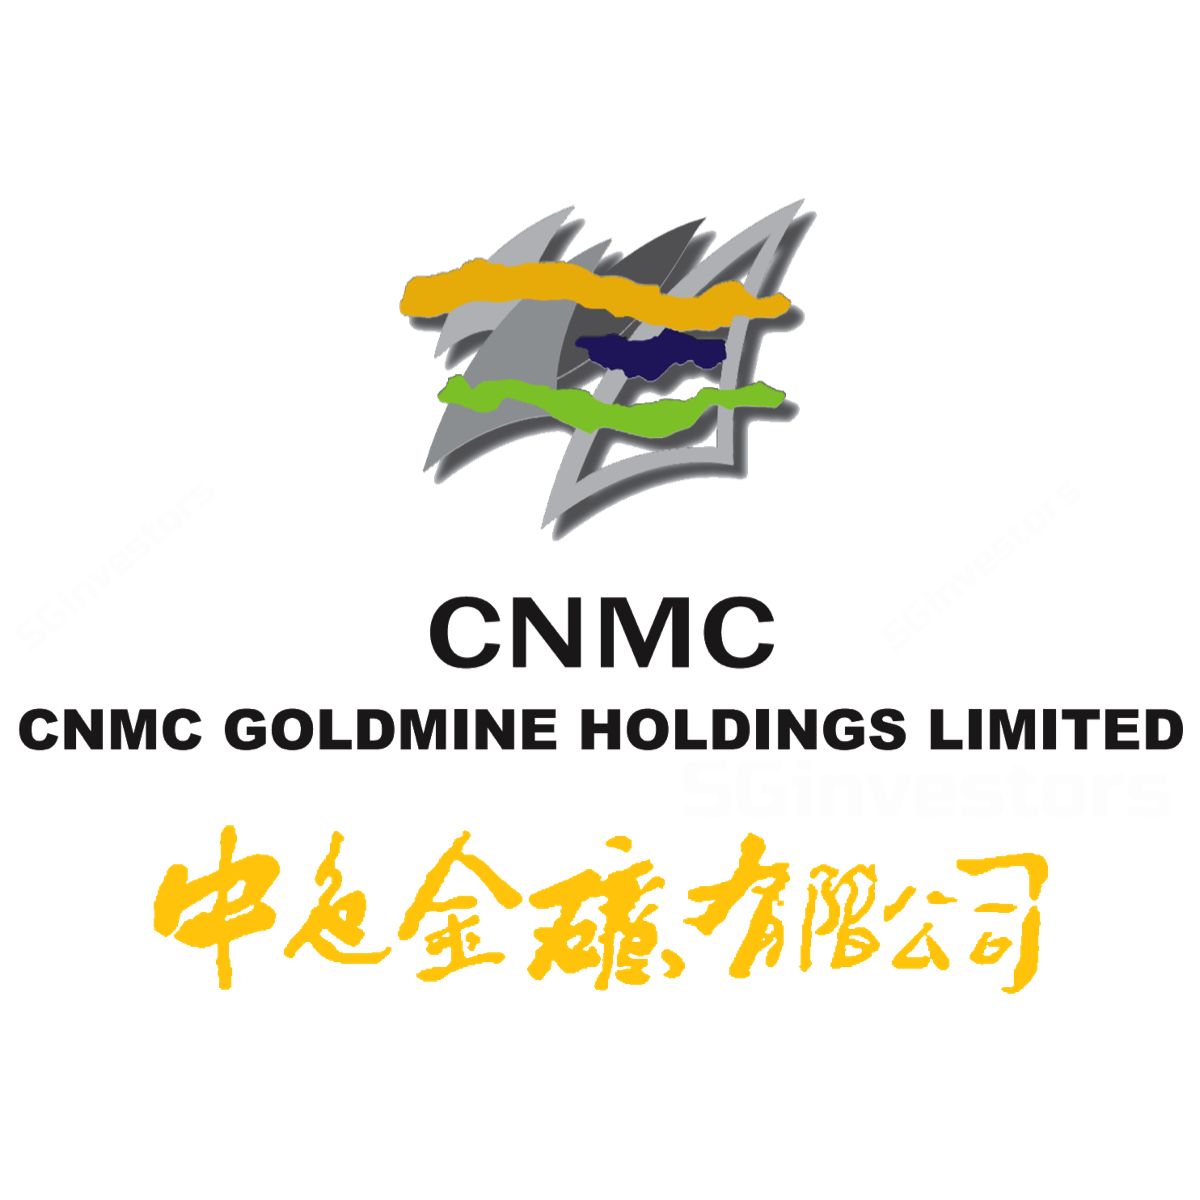 CNMC Goldmine Holdings Limited - Phillip Securities 2017-11-13: Carbon-in-leach Plant Enters Into A Trial Run